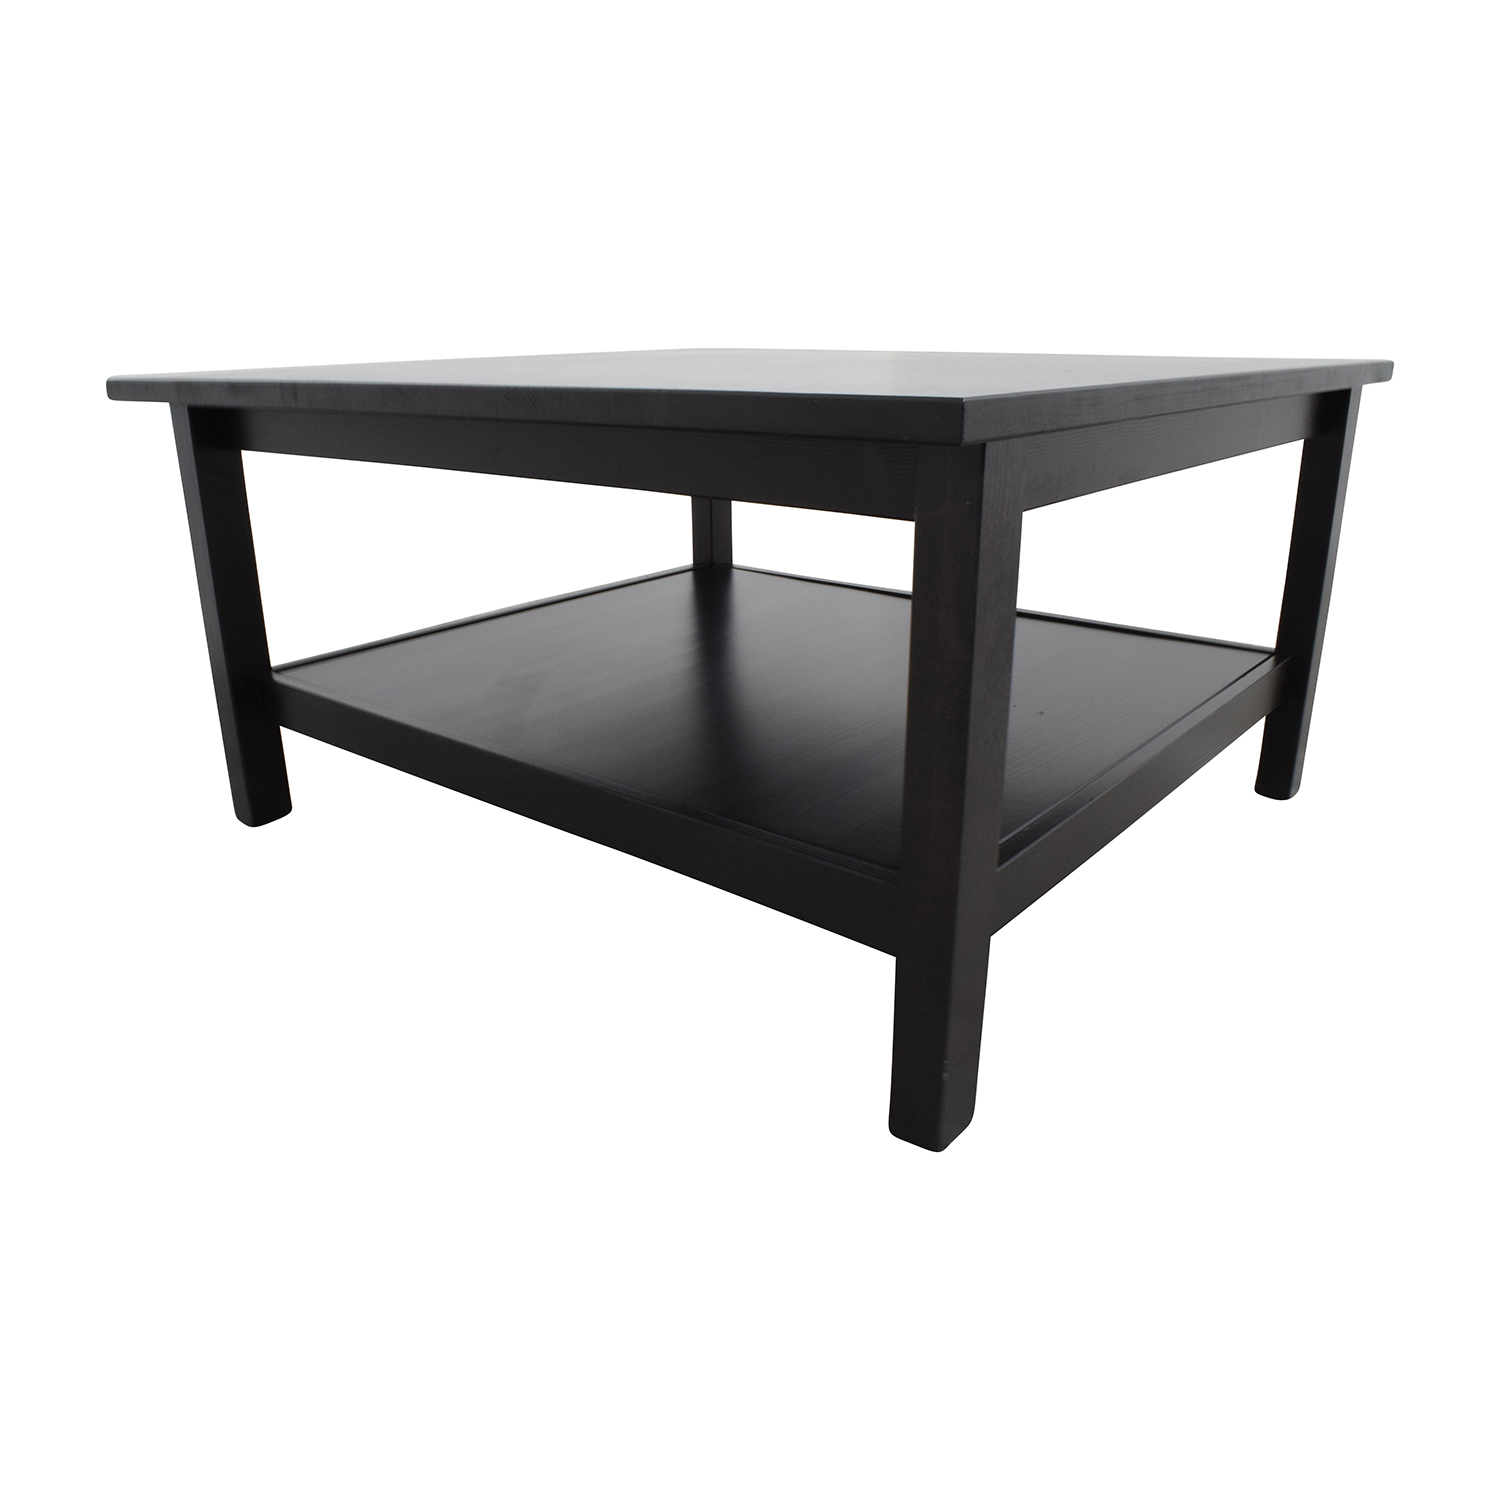 66% OFF IKEA IKEA Brown Square Coffee Table Tables